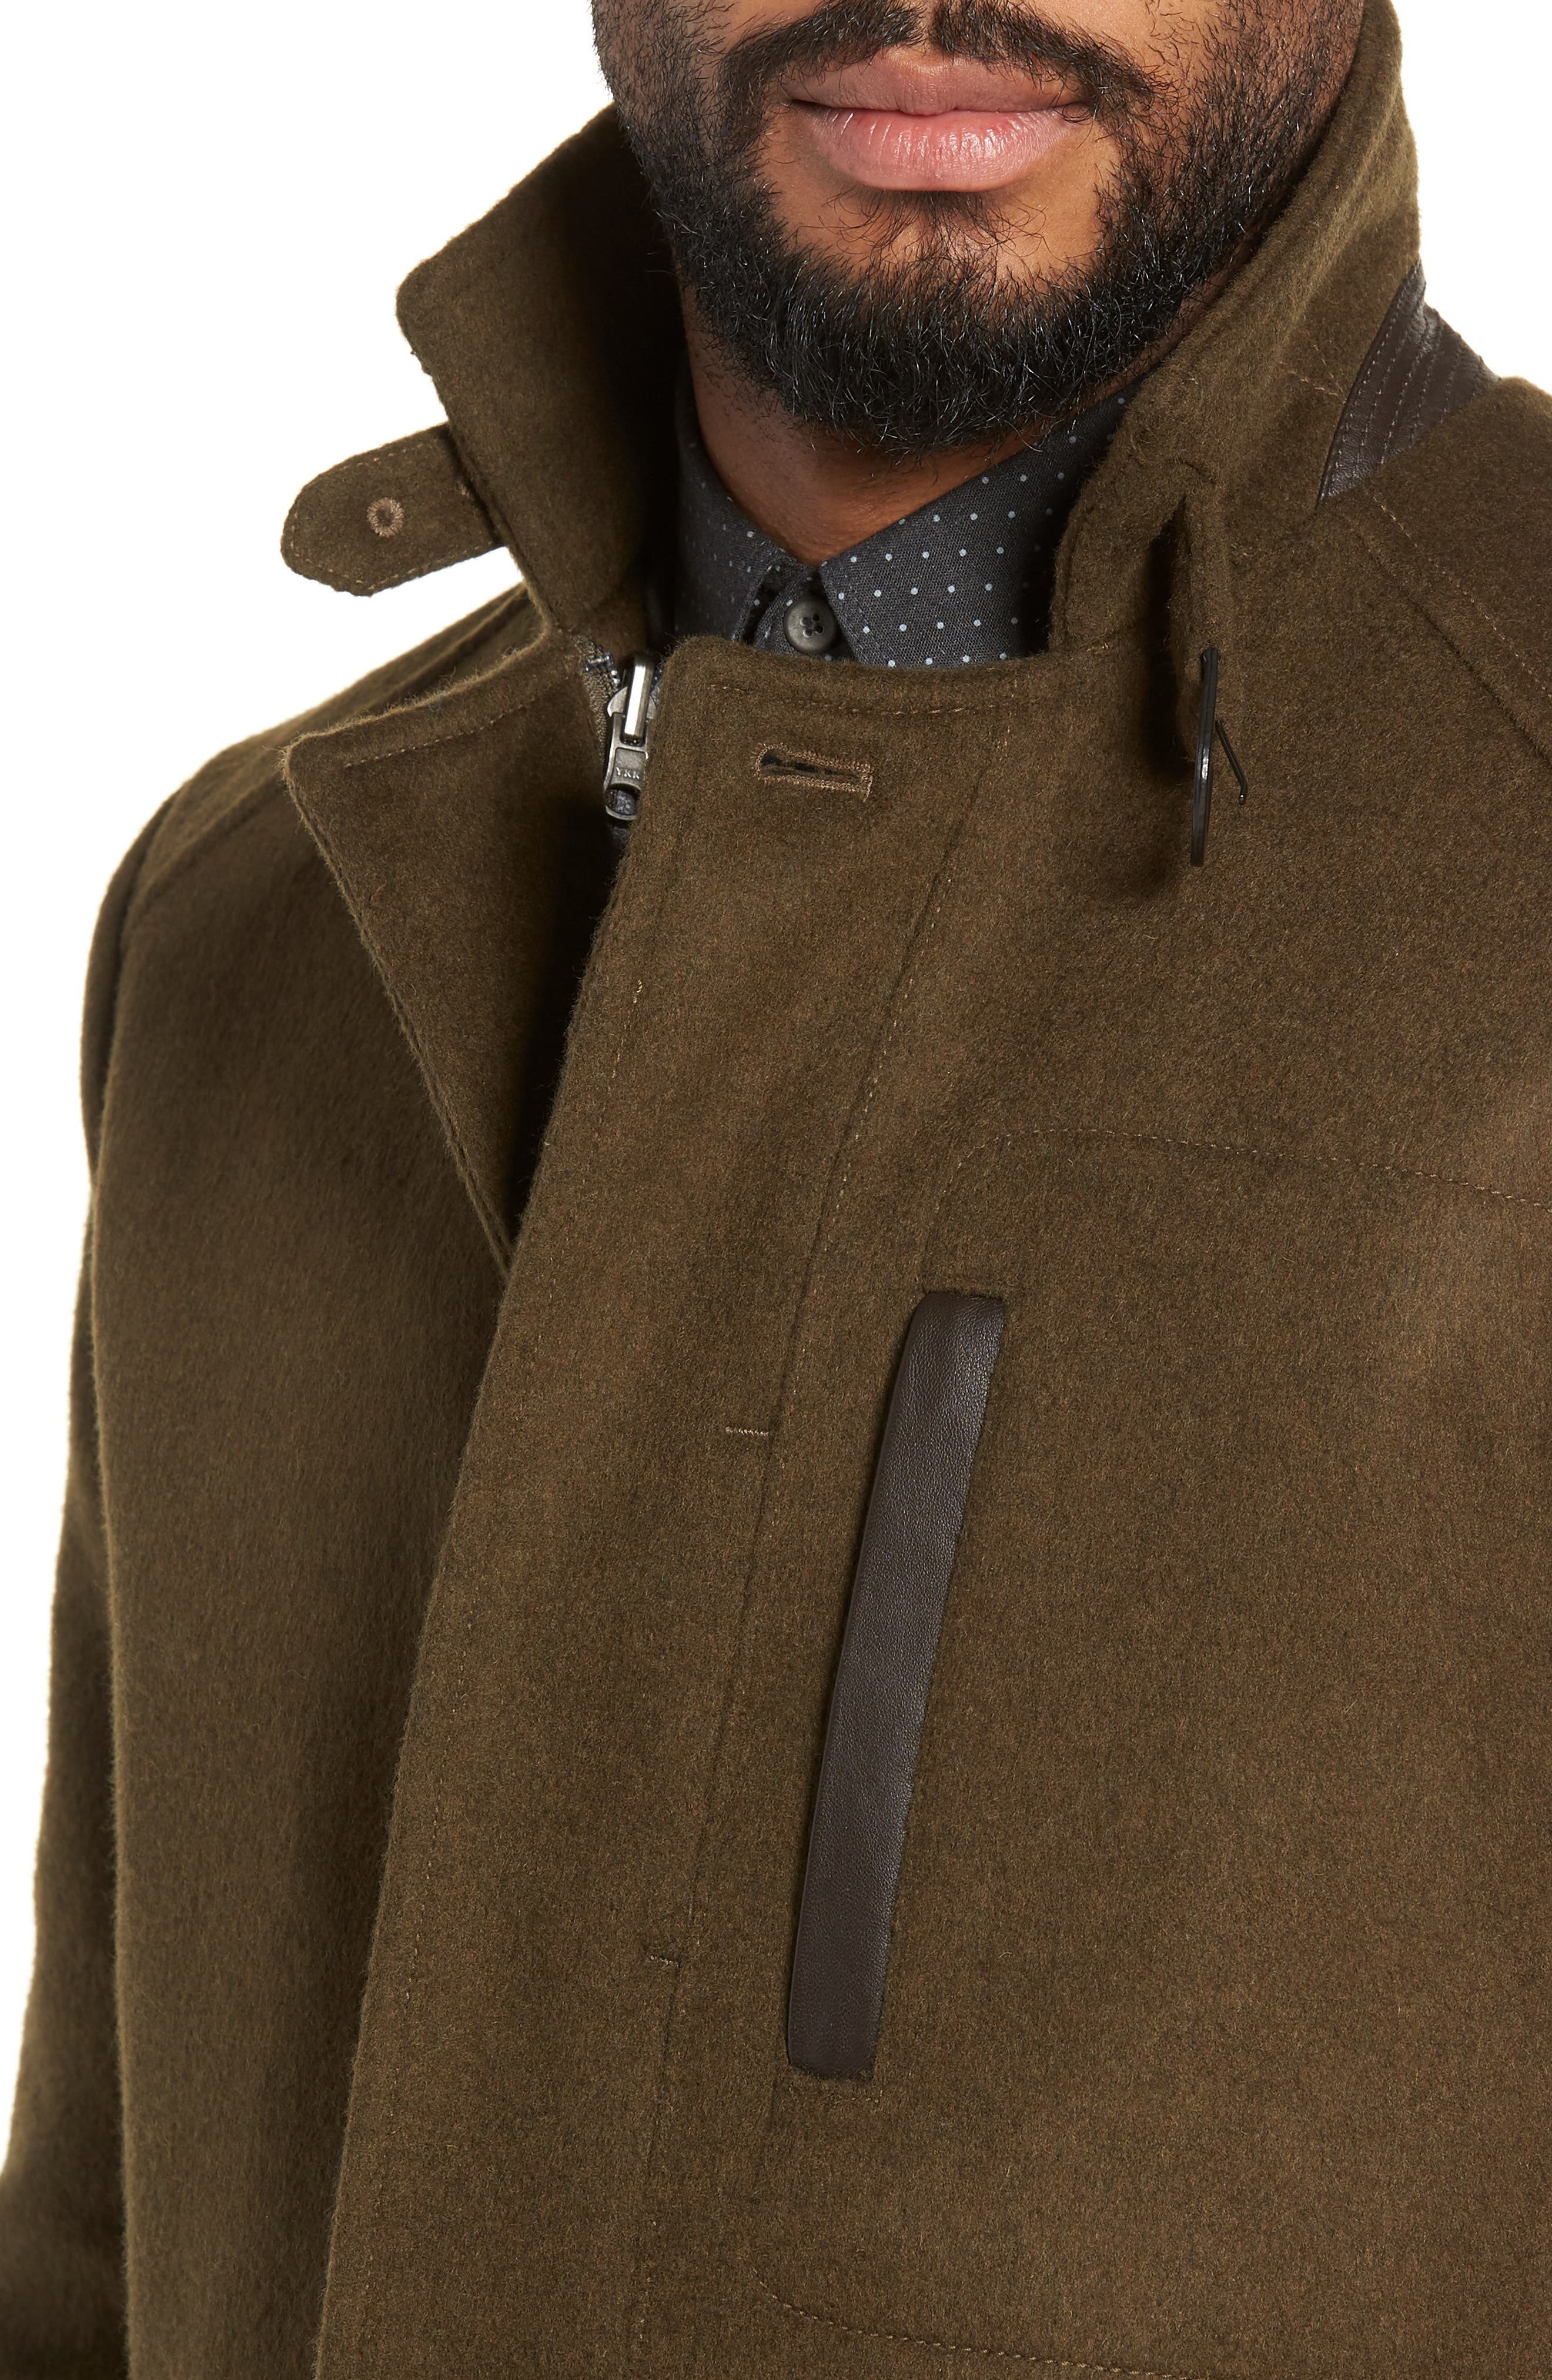 Kilo 3-in-1 Peacoat with Removable Quilted Jacket,                             Alternate thumbnail 5, color,                             OLIVE